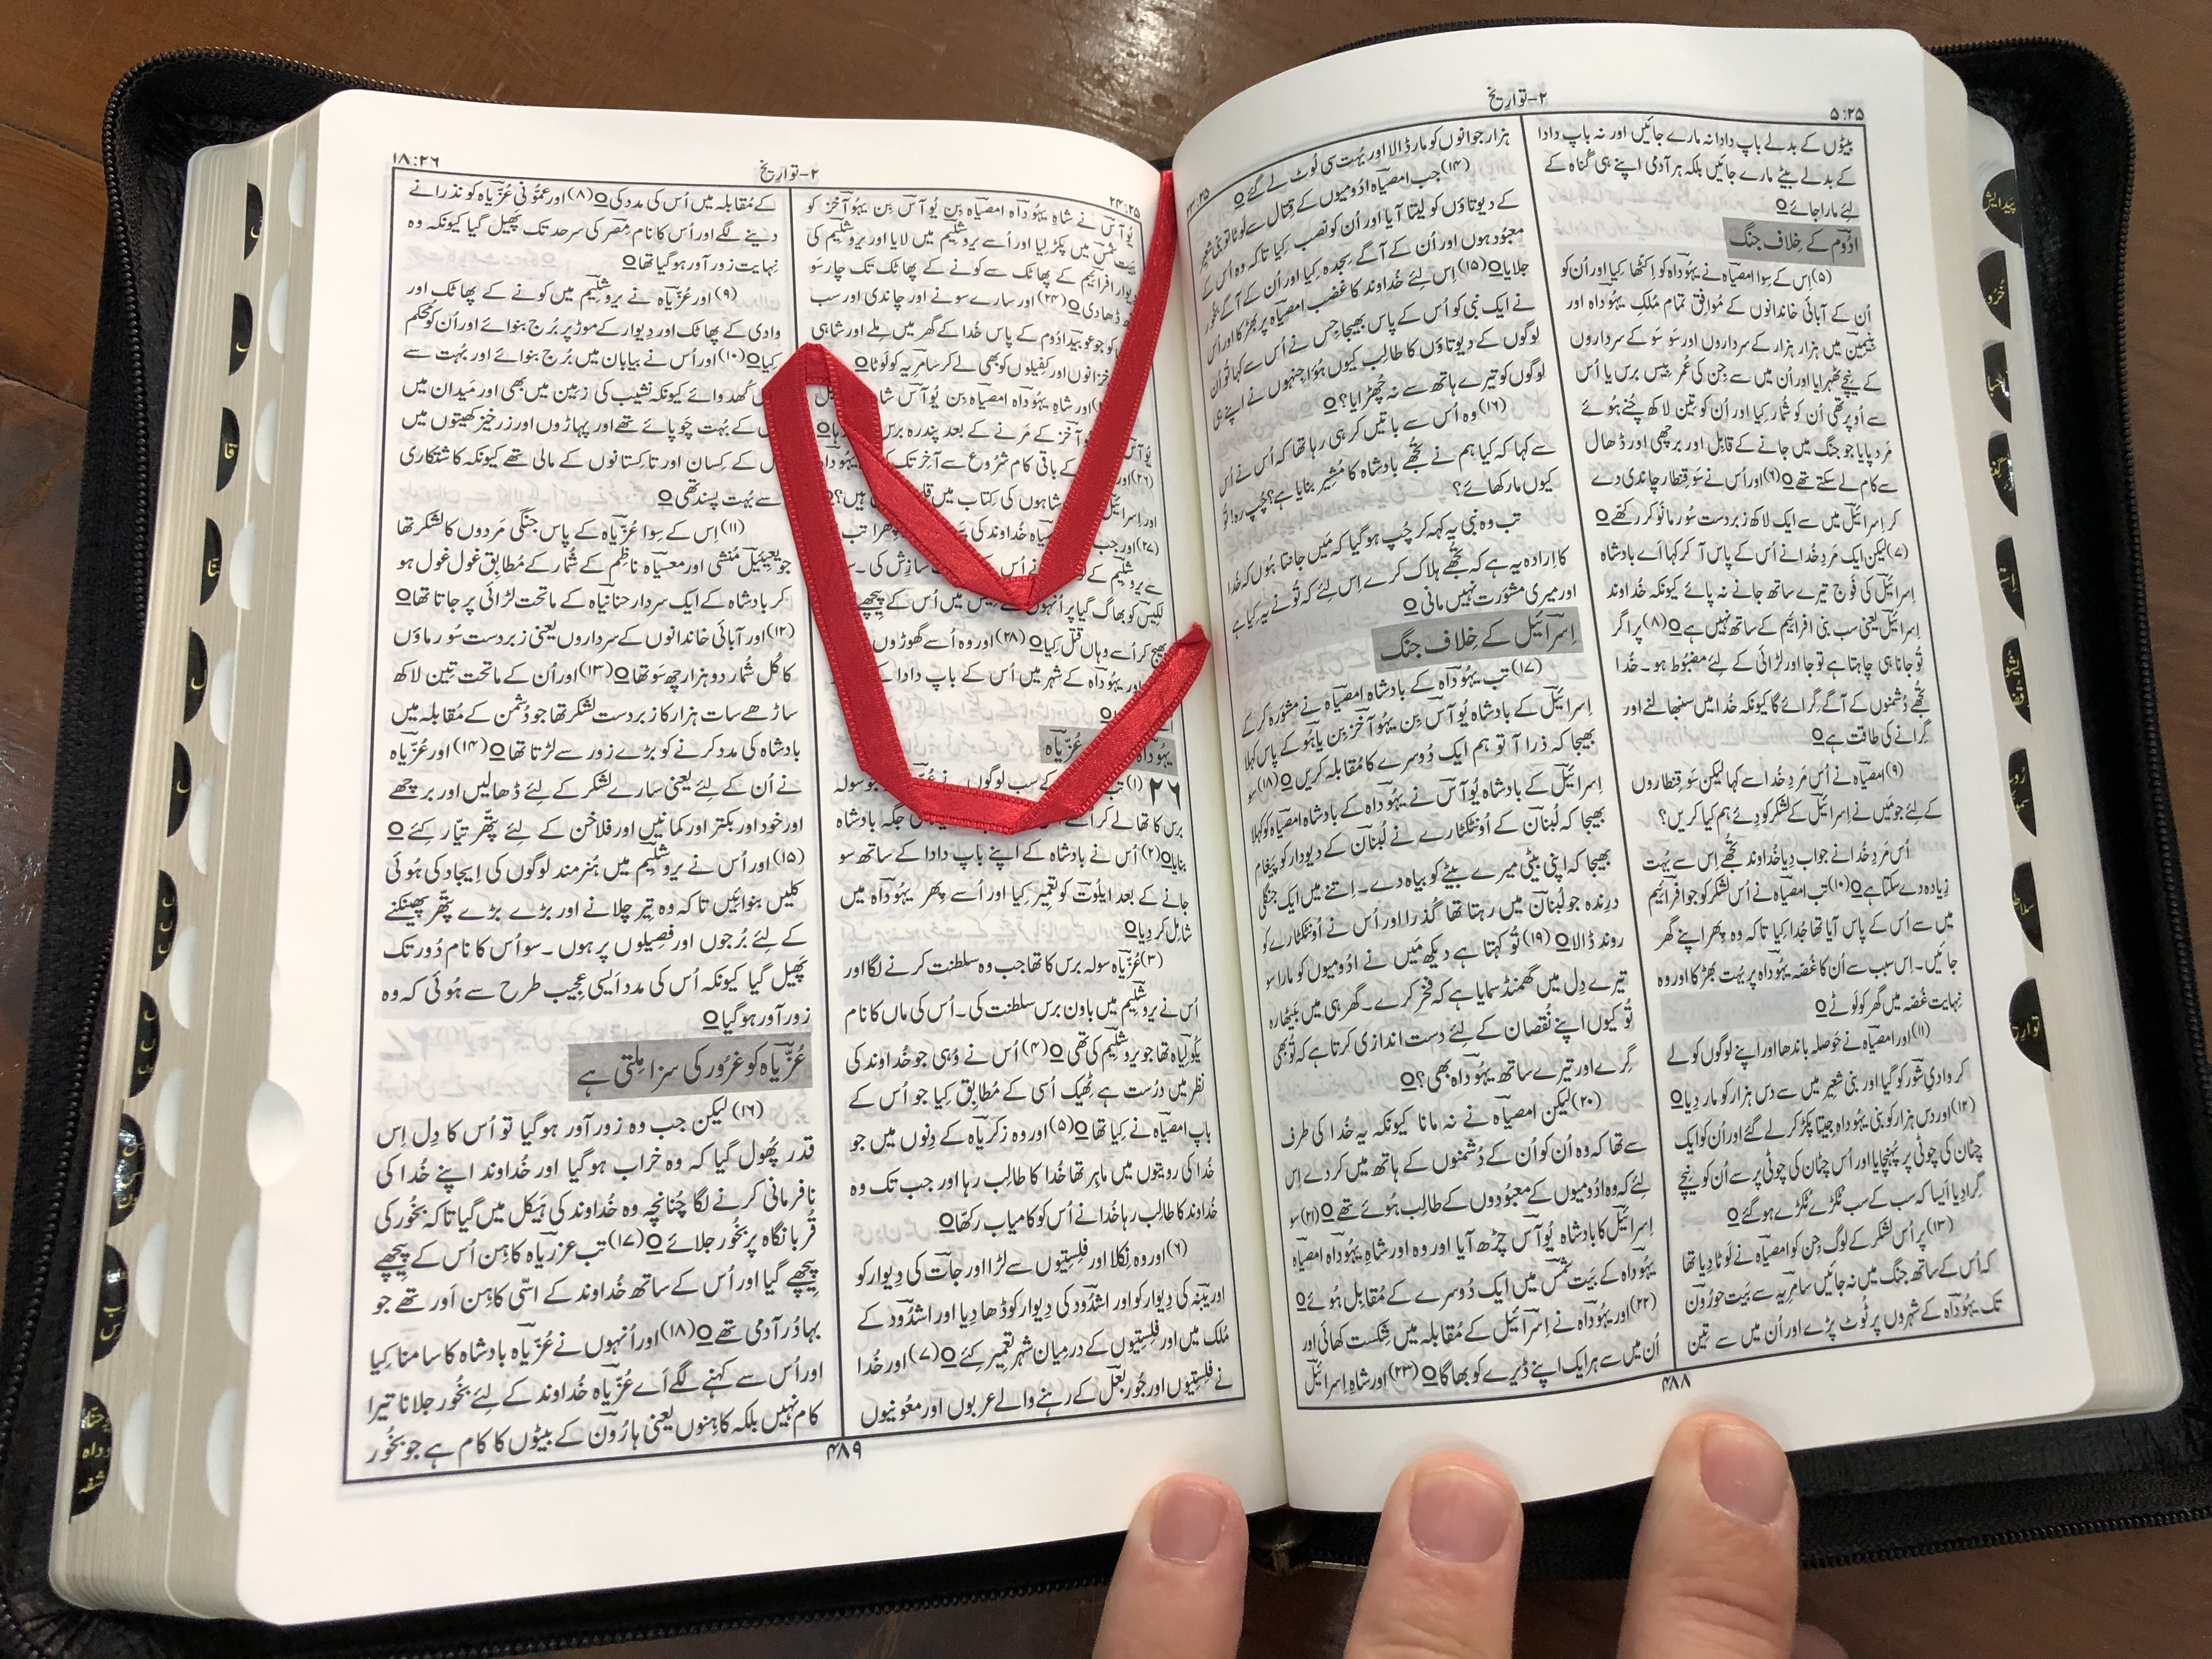 urdu-holy-bible-black-leather-bound-with-zipper-revised-version-pakistan-bible-society-2017-genuine-leather-golden-page-edges-thumb-index-93p-series-12-.jpg